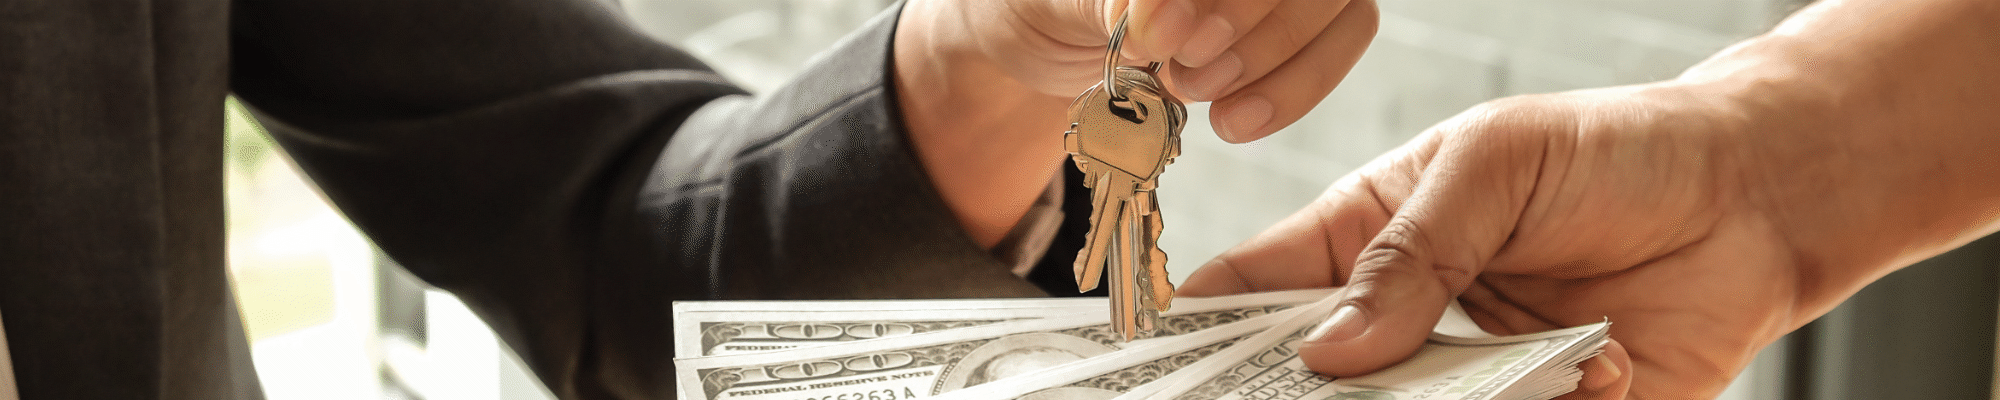 hands exchanging money for keys to new home